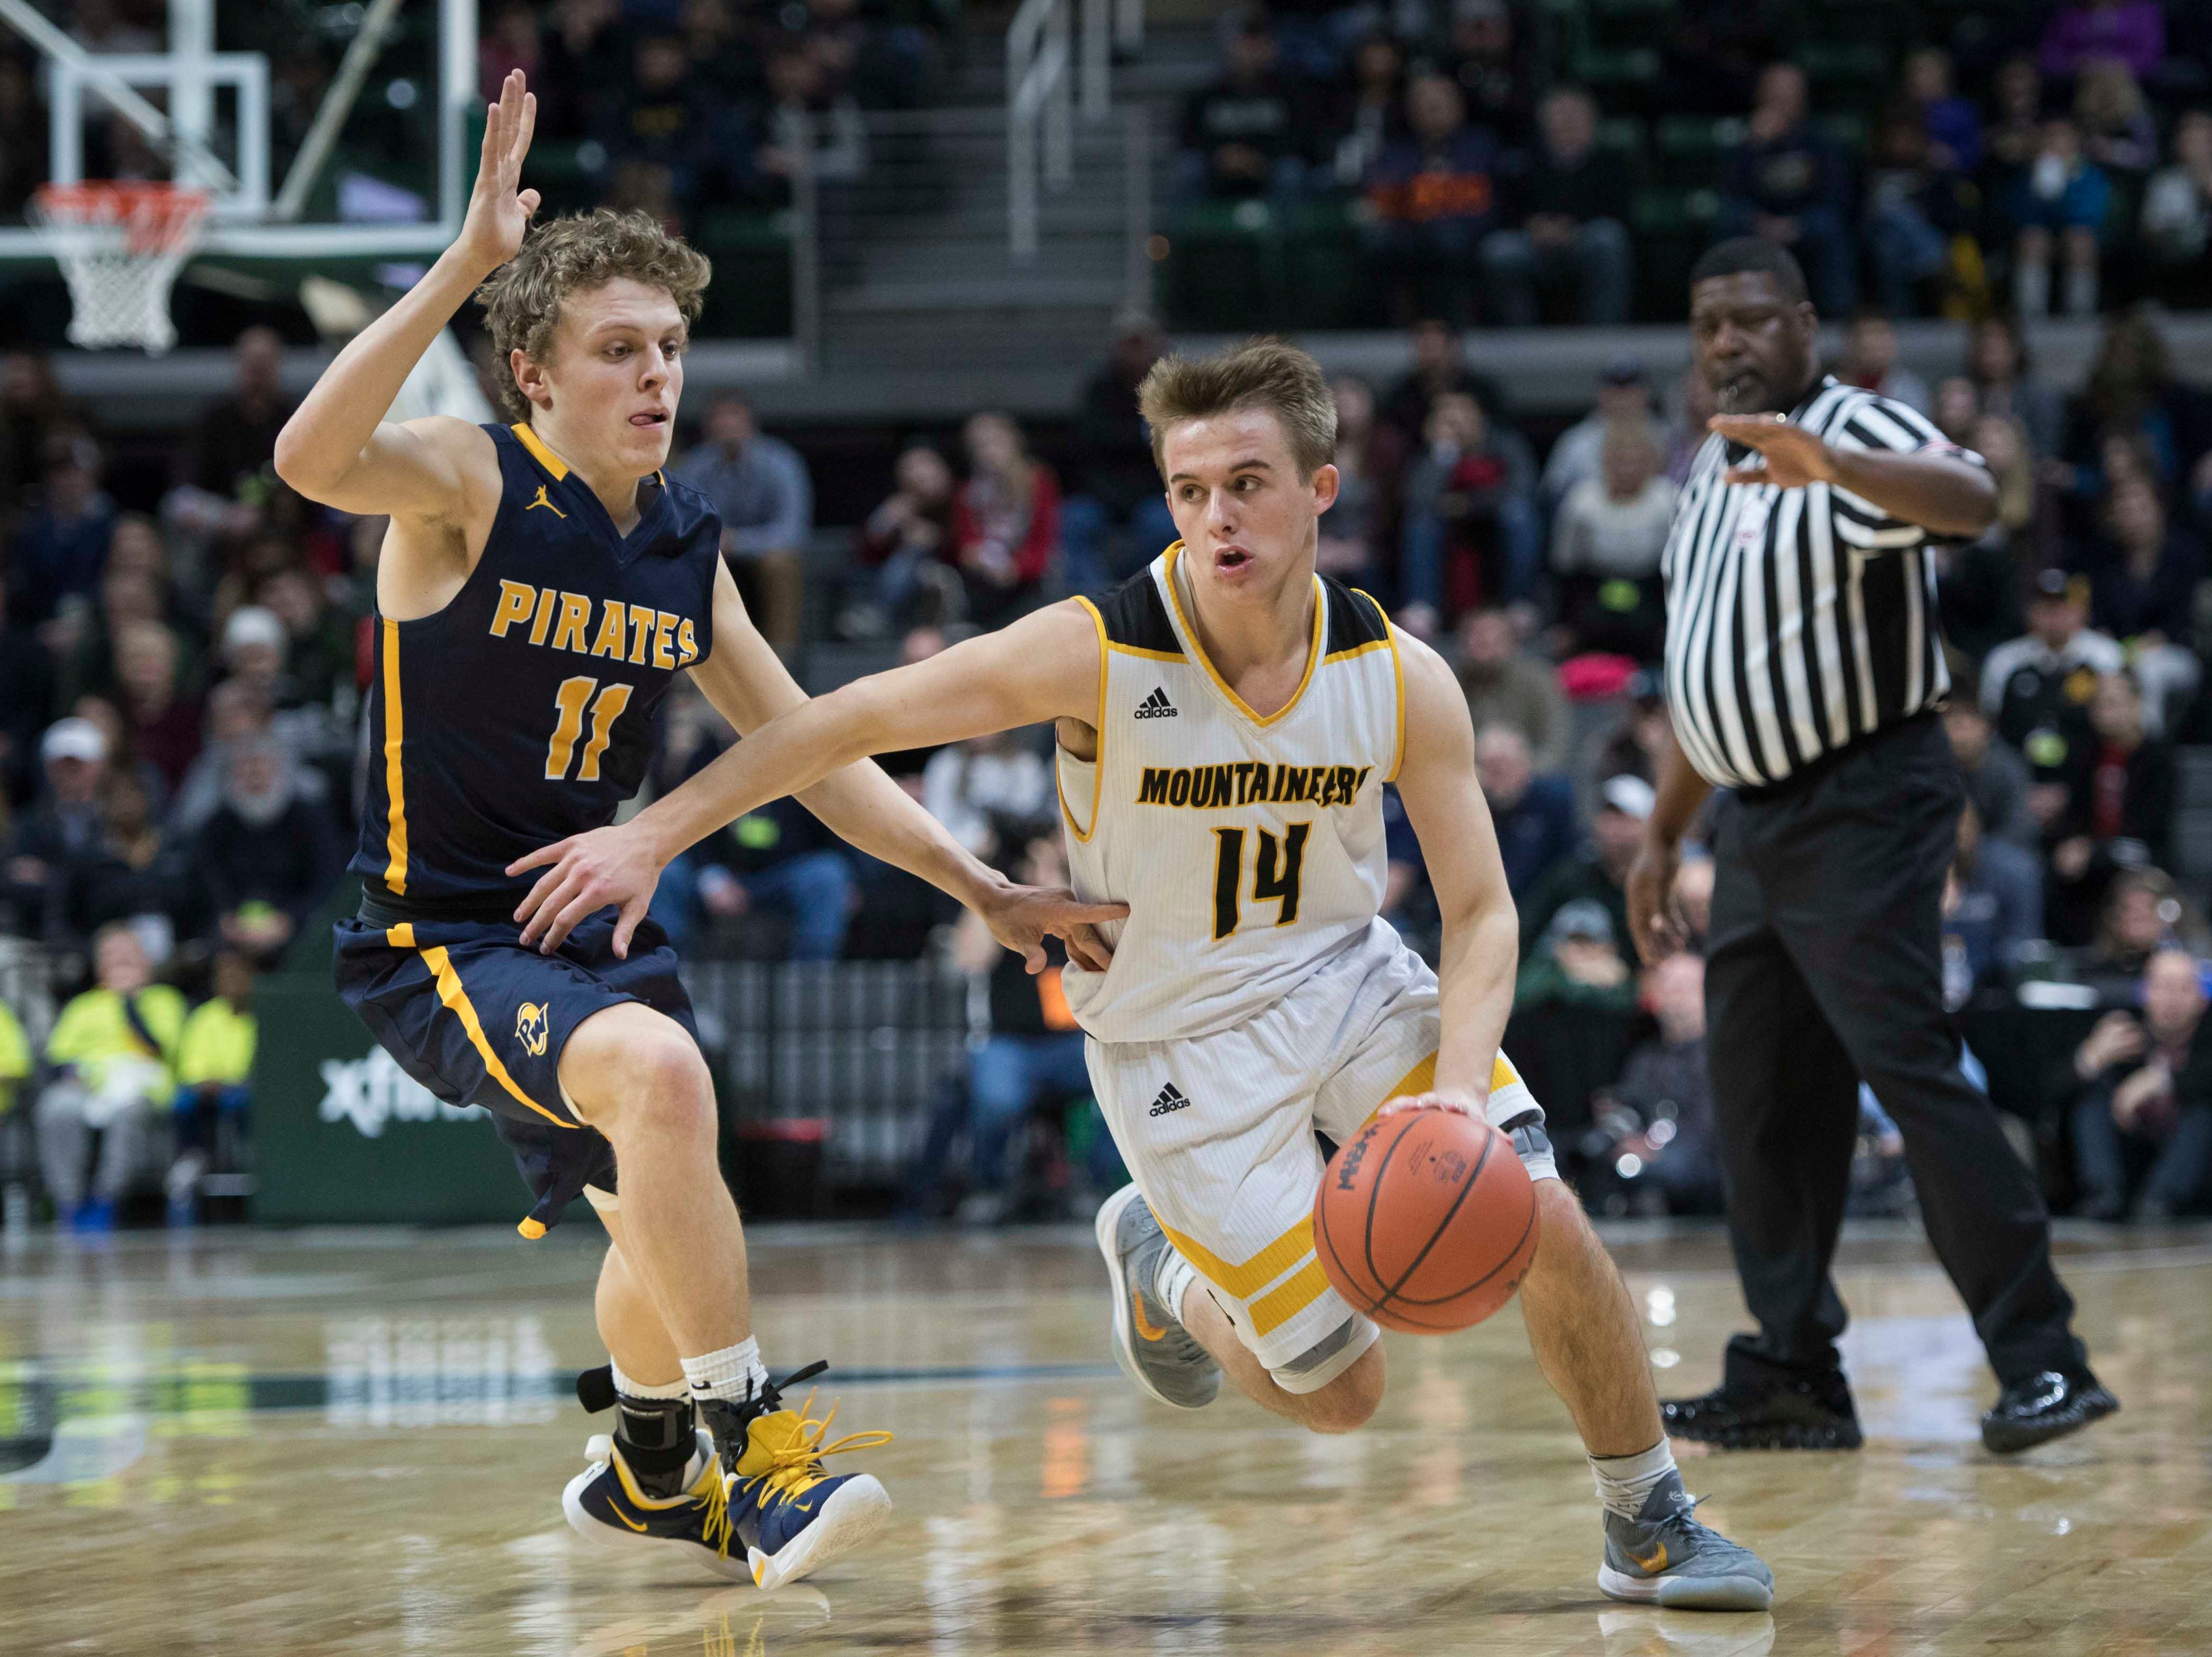 Pewamo-Westphalia's Collin Trierweiler covers Iron Mountain's Marcus Johnson in the second half.